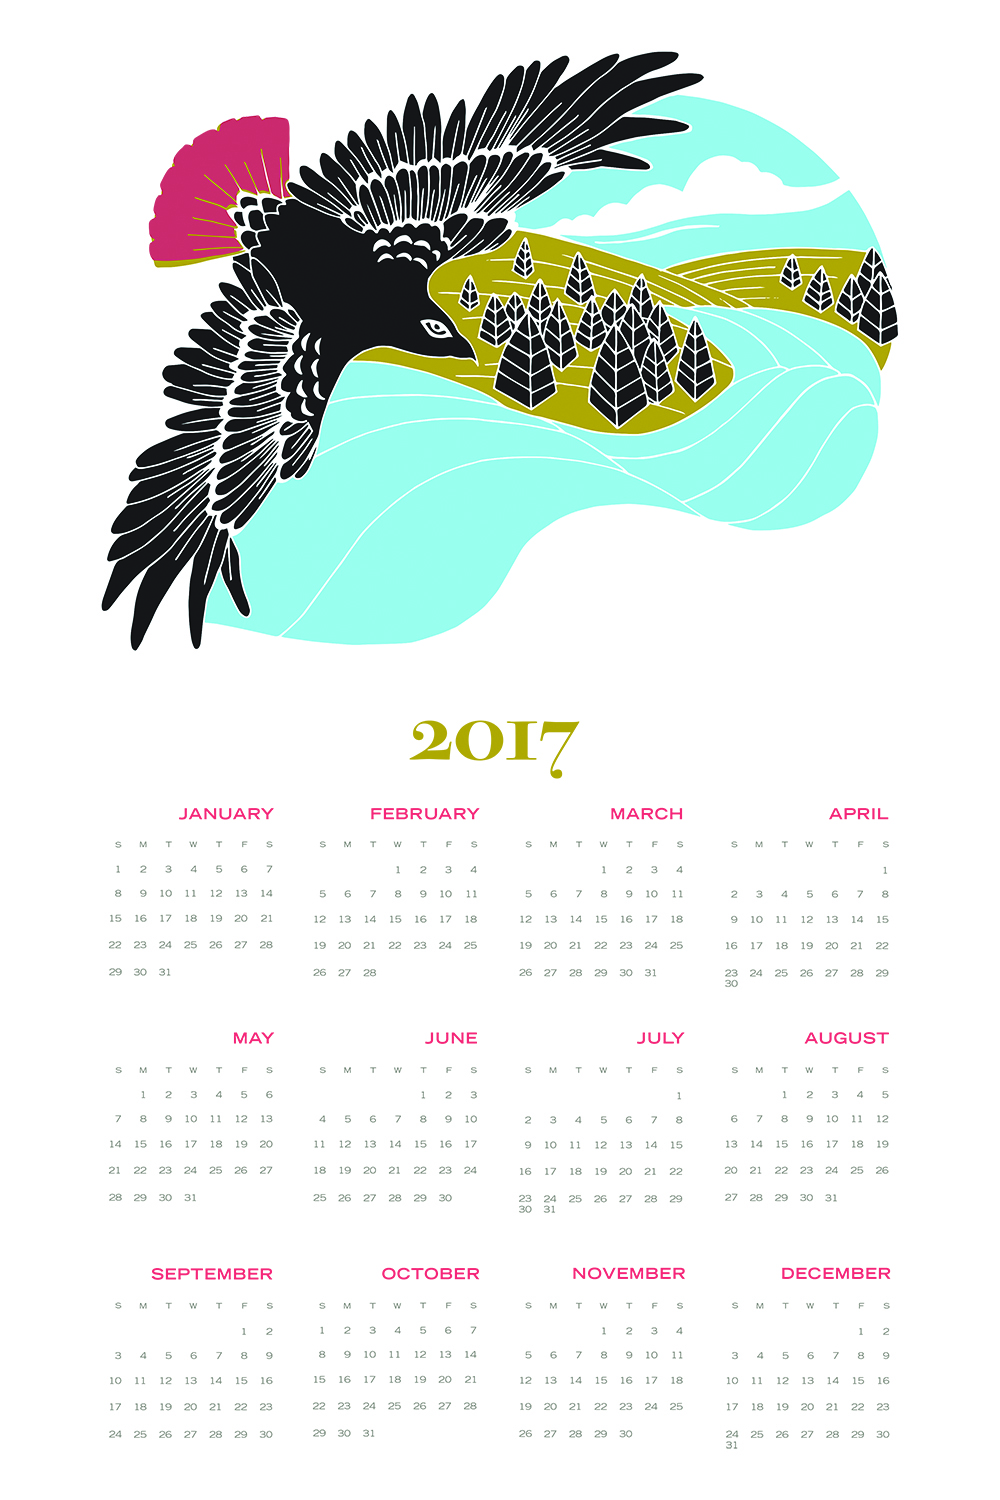 Mockup of my 2017 hawk calender